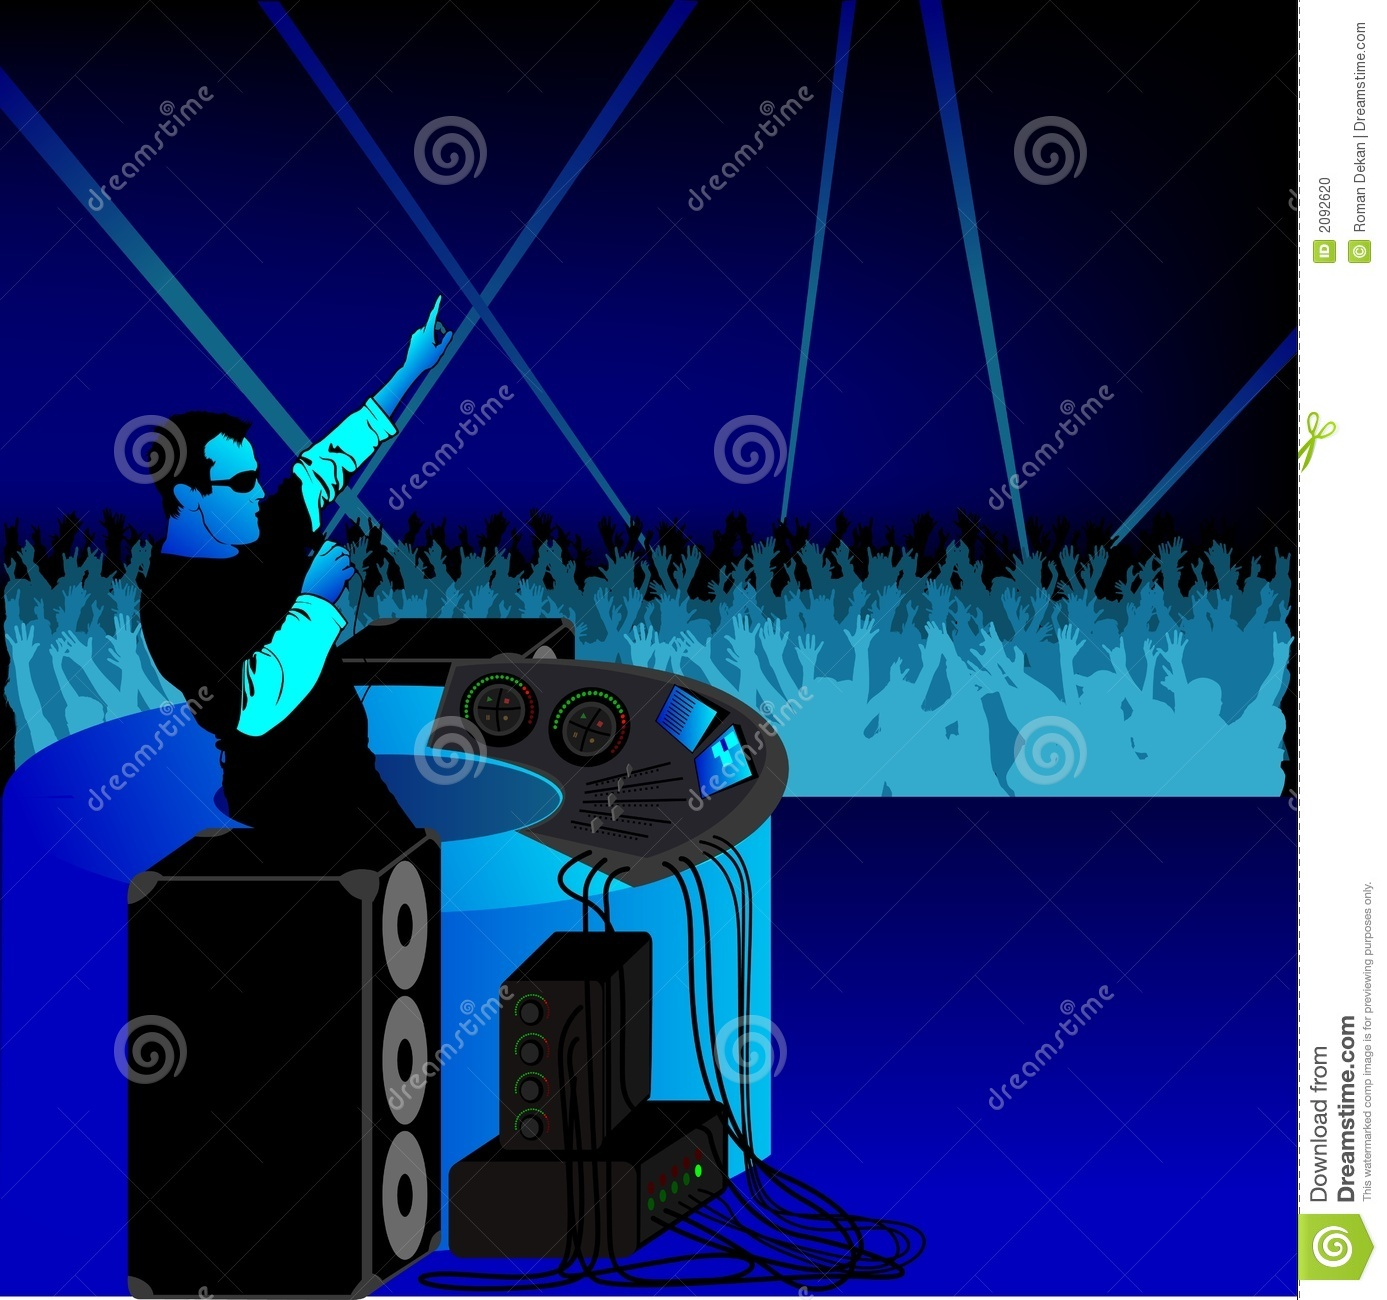 DJ Party Blue Stock Photo - Image: 2092620